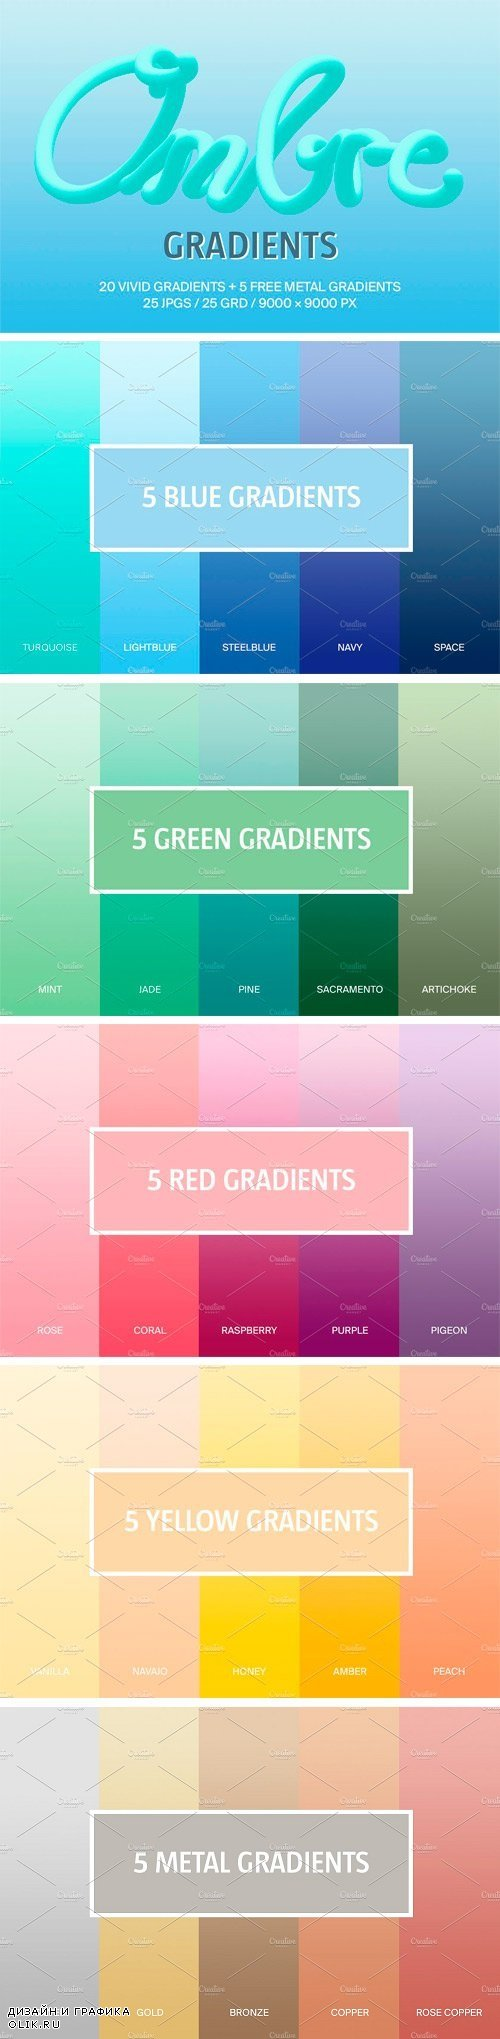 Ombre Gradients - 1479710